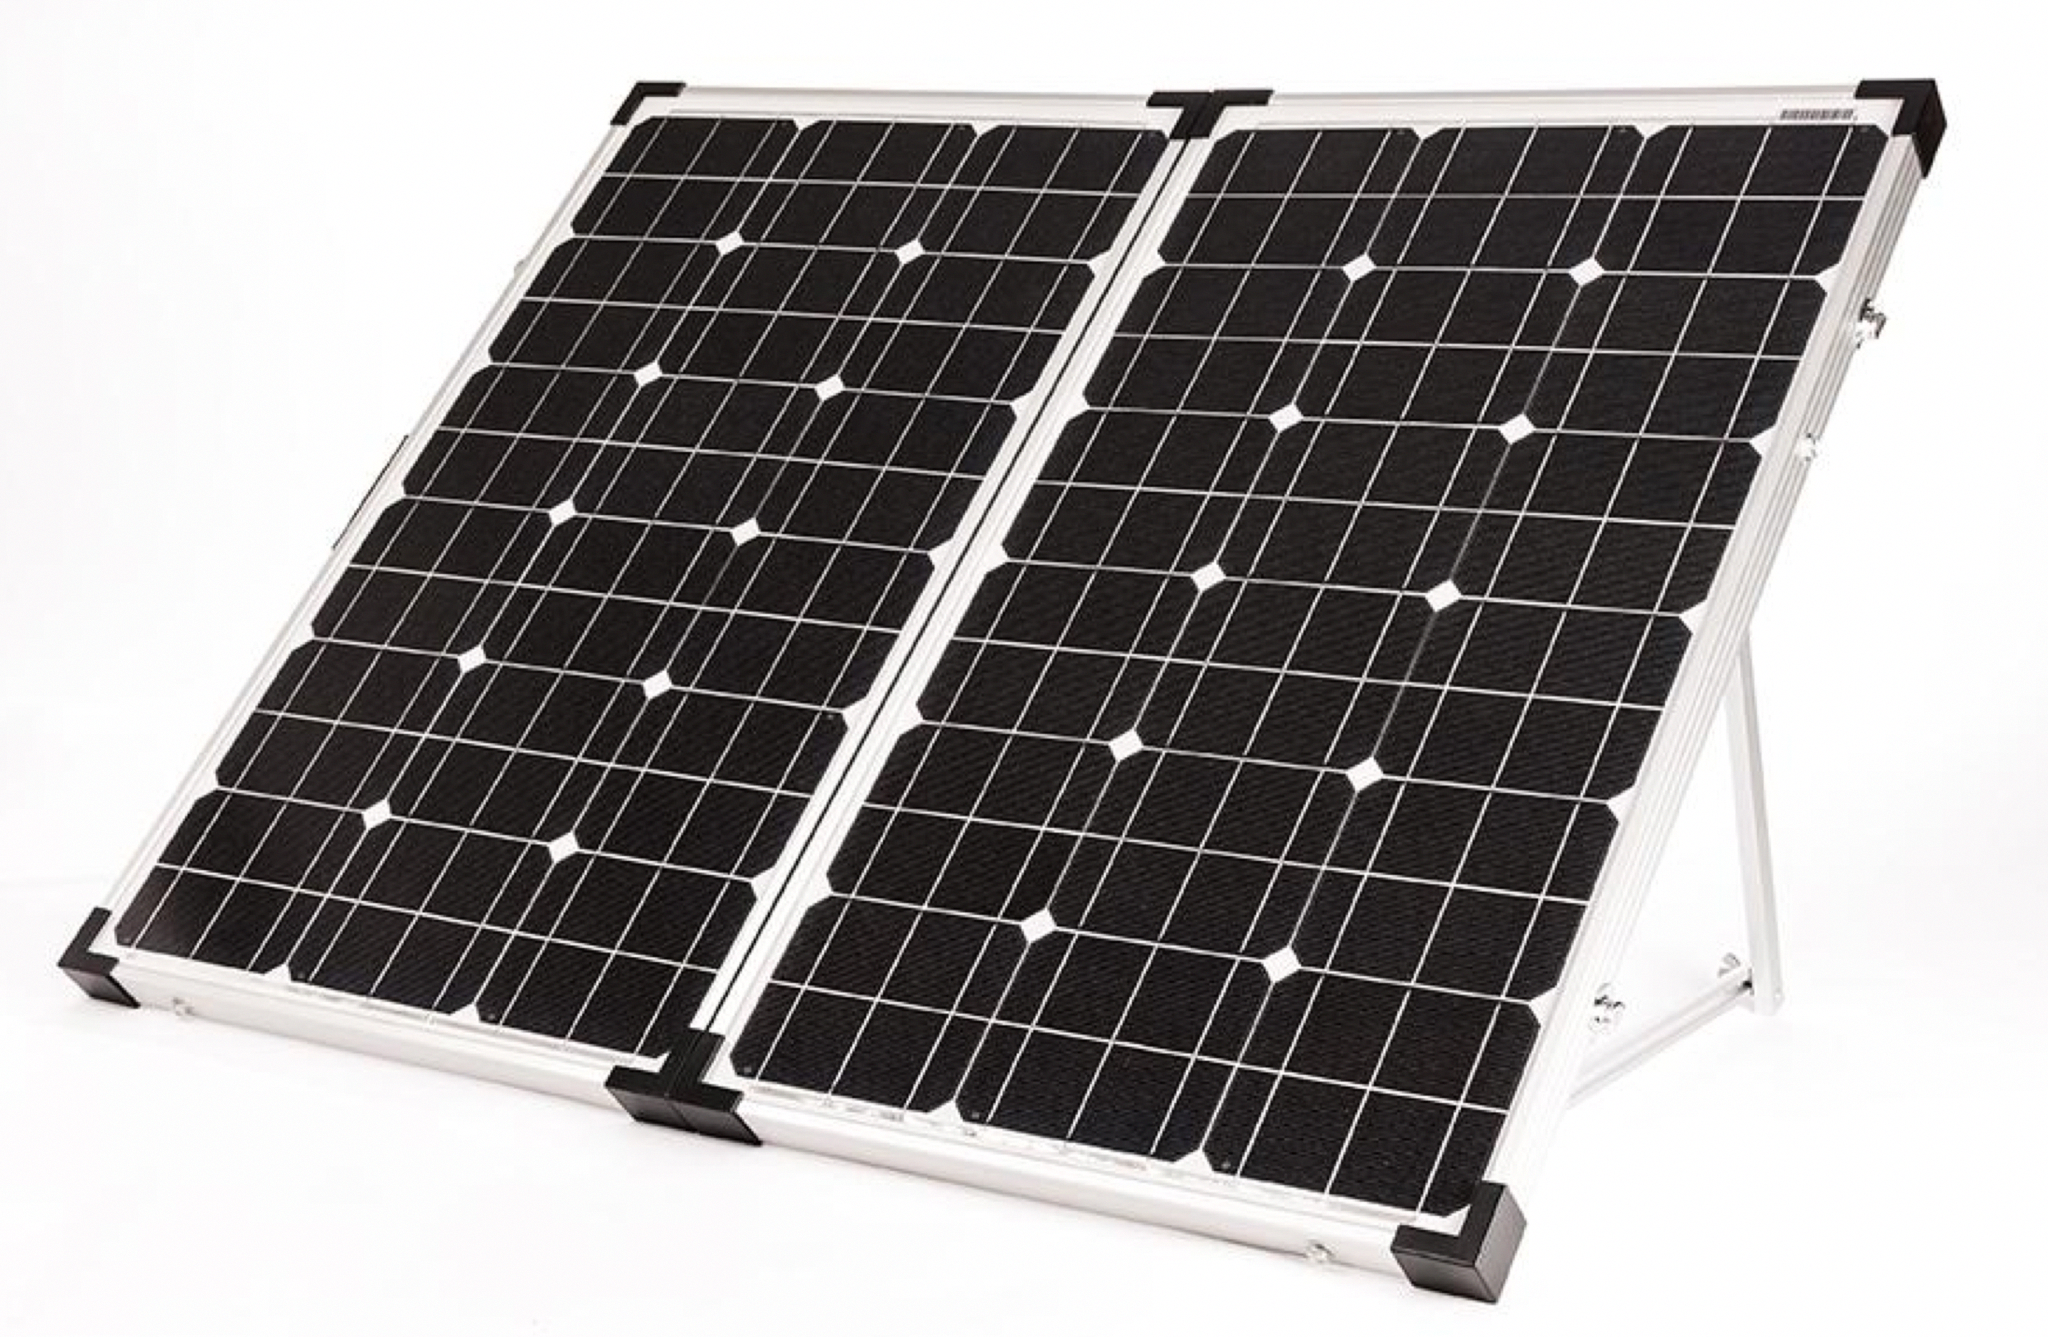 Solar Panel Kit 120 Watt From Airstream Life Store Solarpanelkits Solar Panels Portable Solar Panels Solar Kit